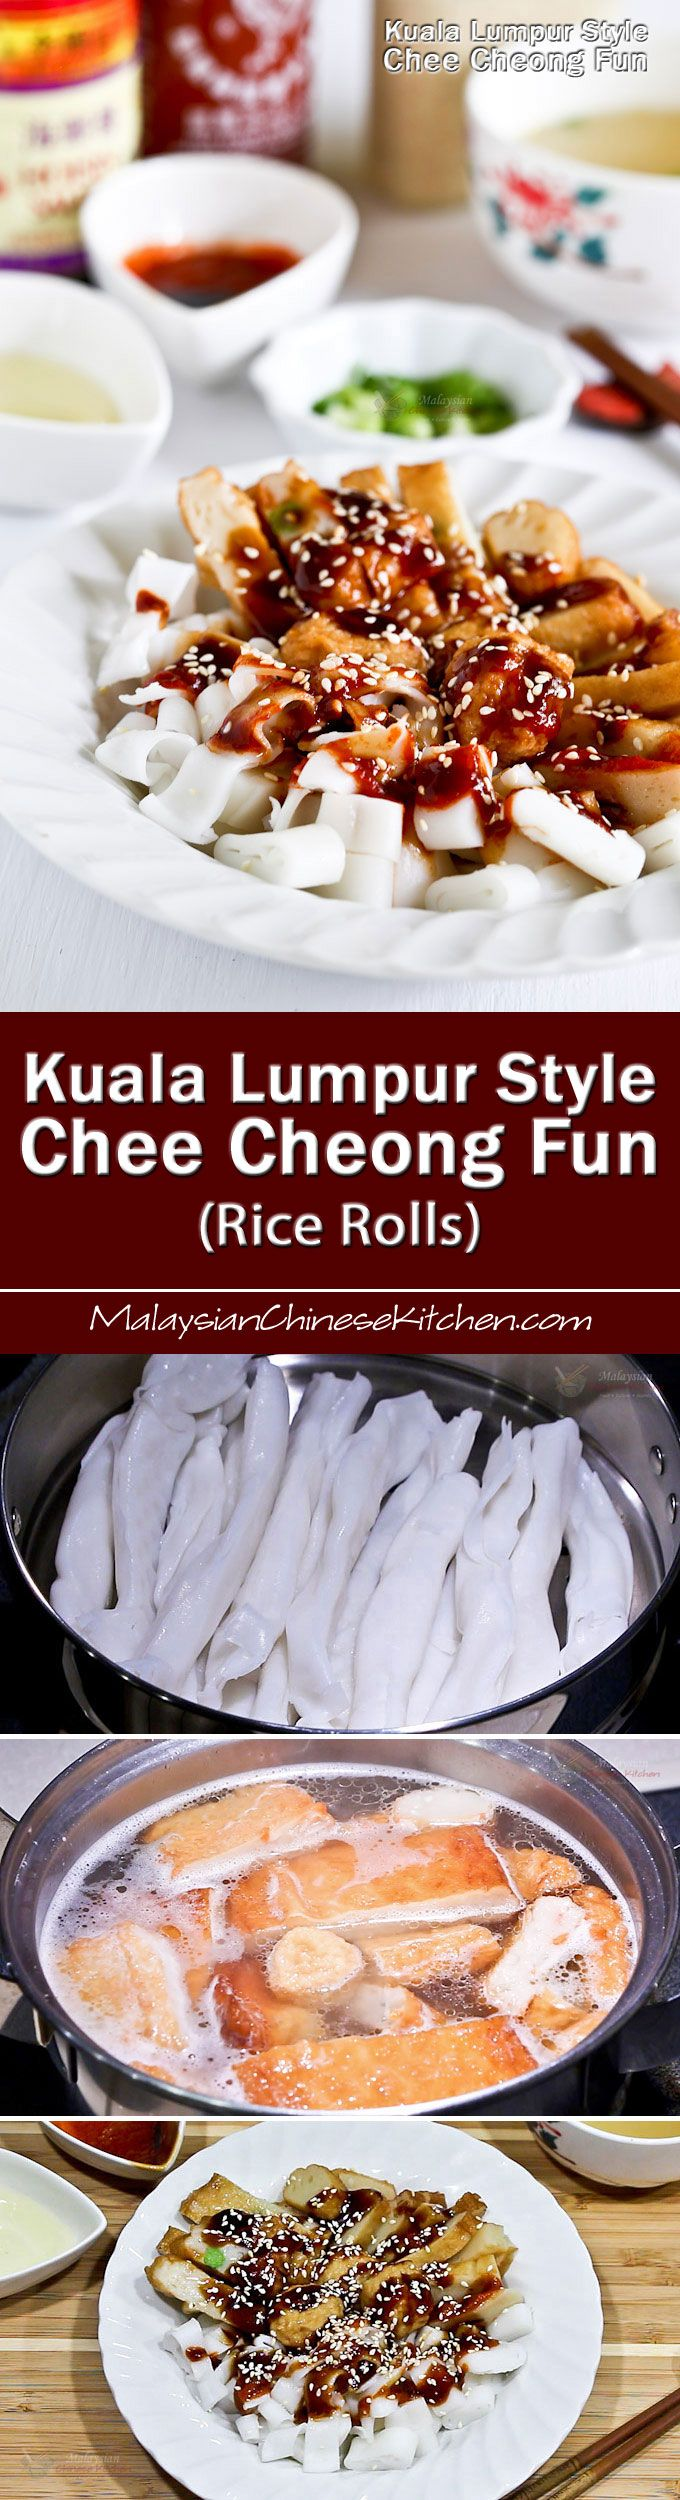 95 best malaysian chinese kitchen images on pinterest asian food easy to put together kuala lumpur style chee cheong fun using prepackaged ingredients so delicious malaysian foodmalaysian forumfinder Gallery